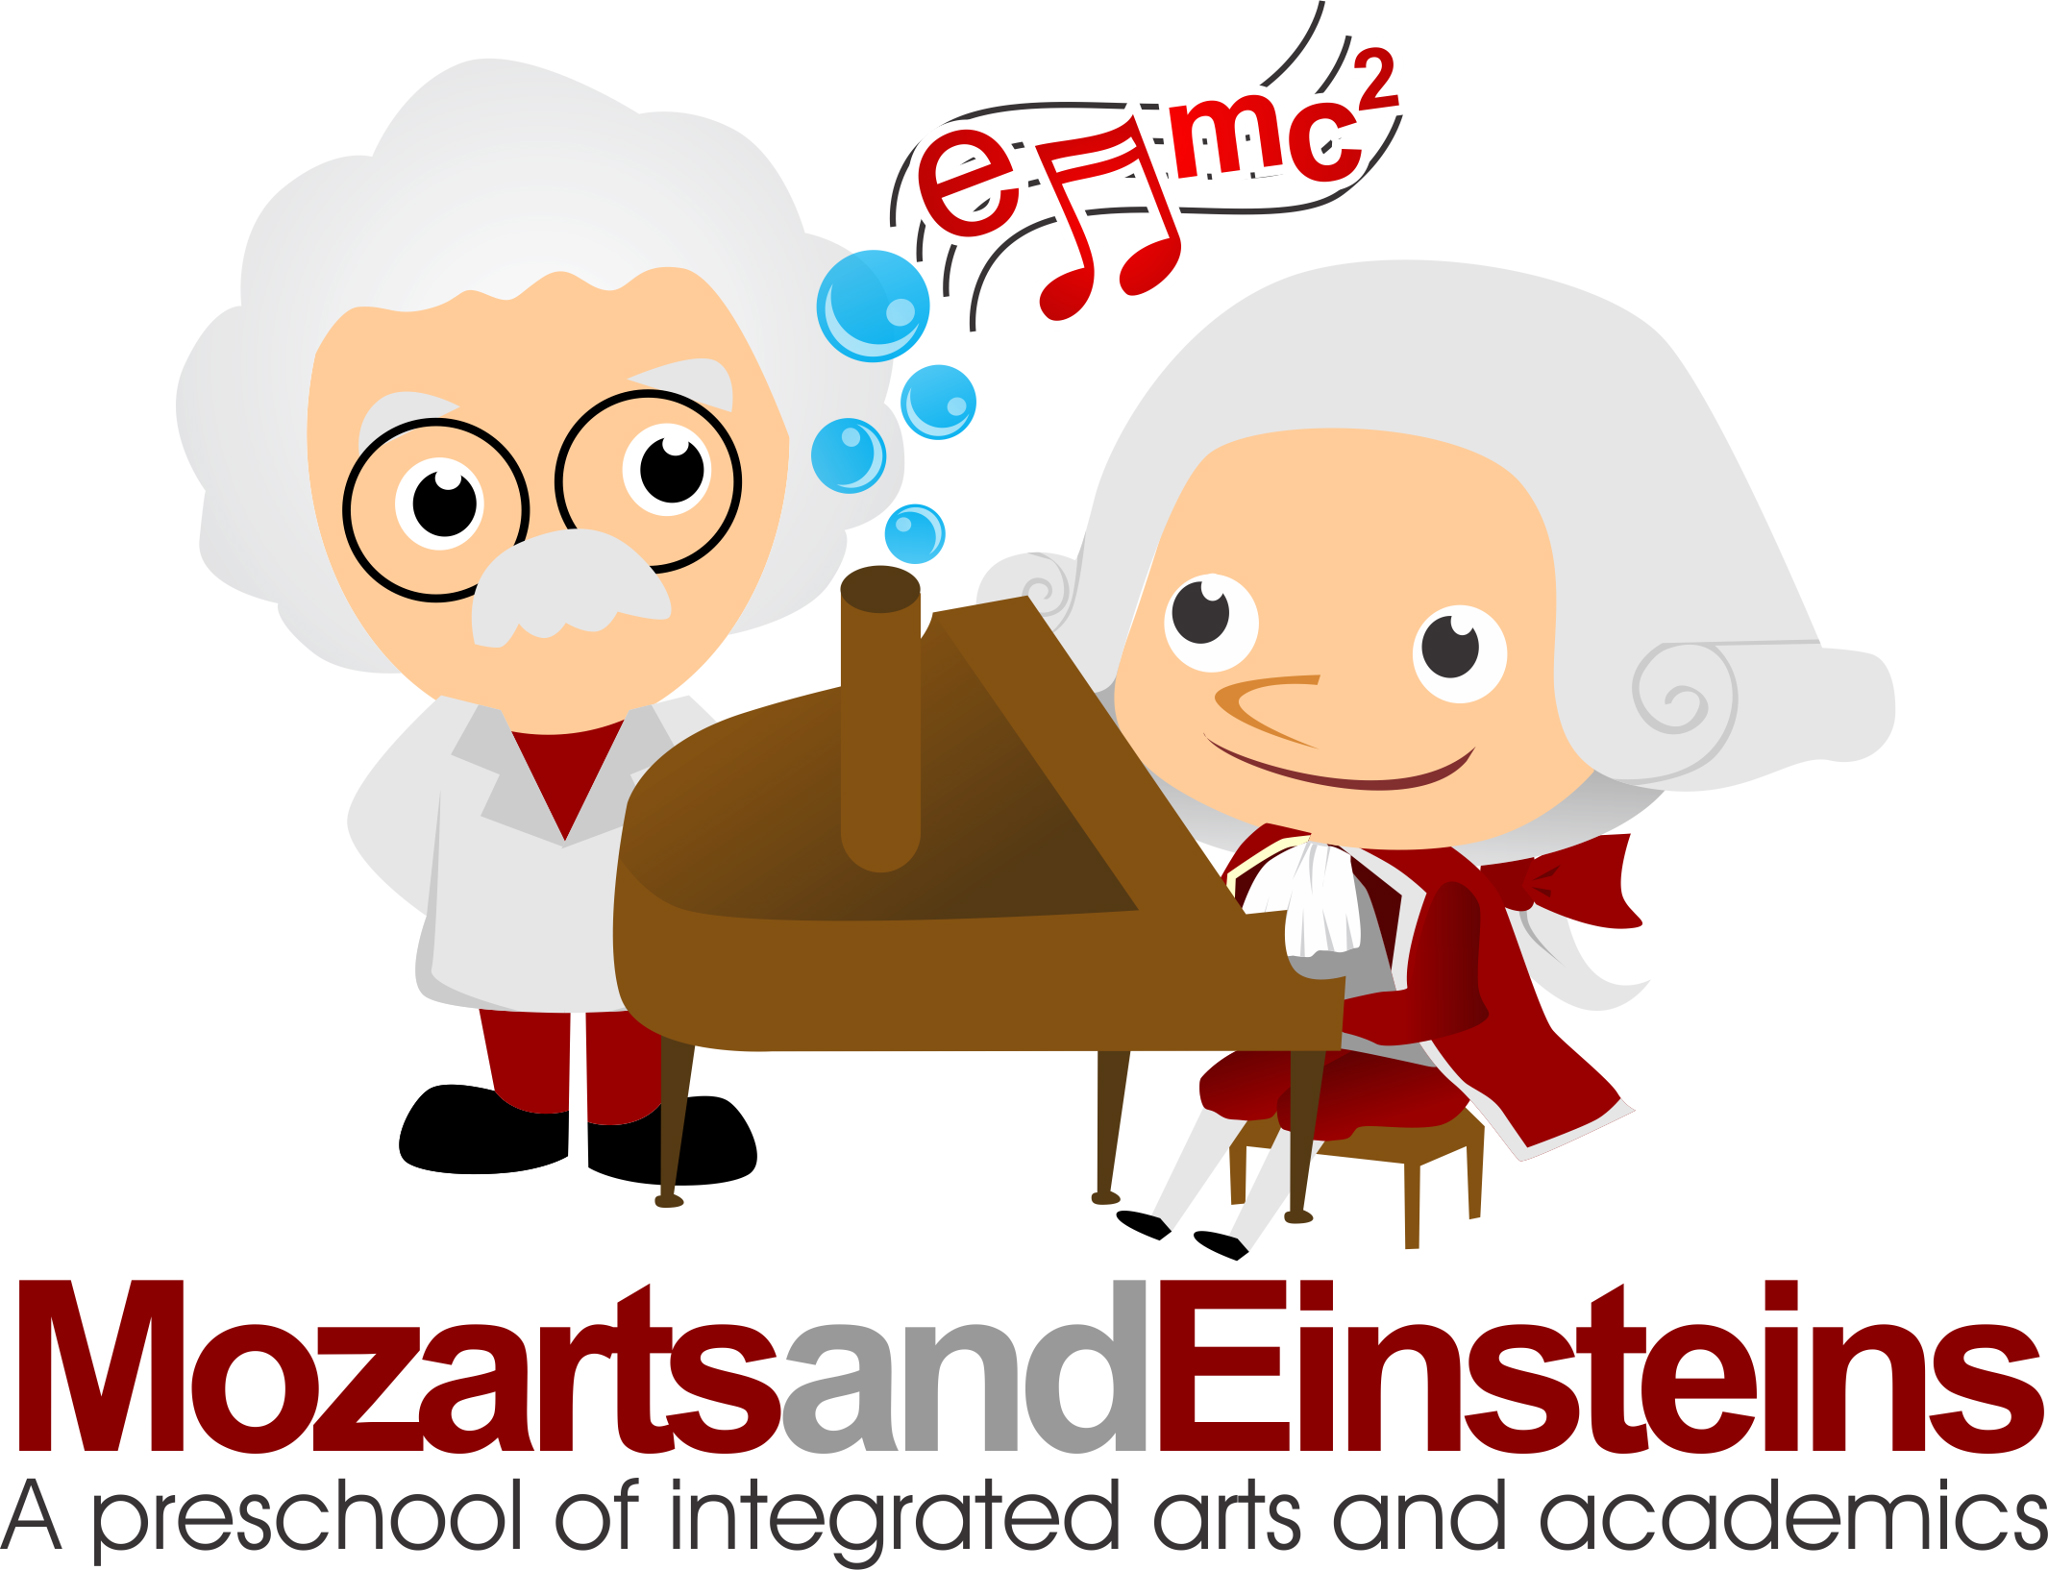 Mozarts and Einsteins